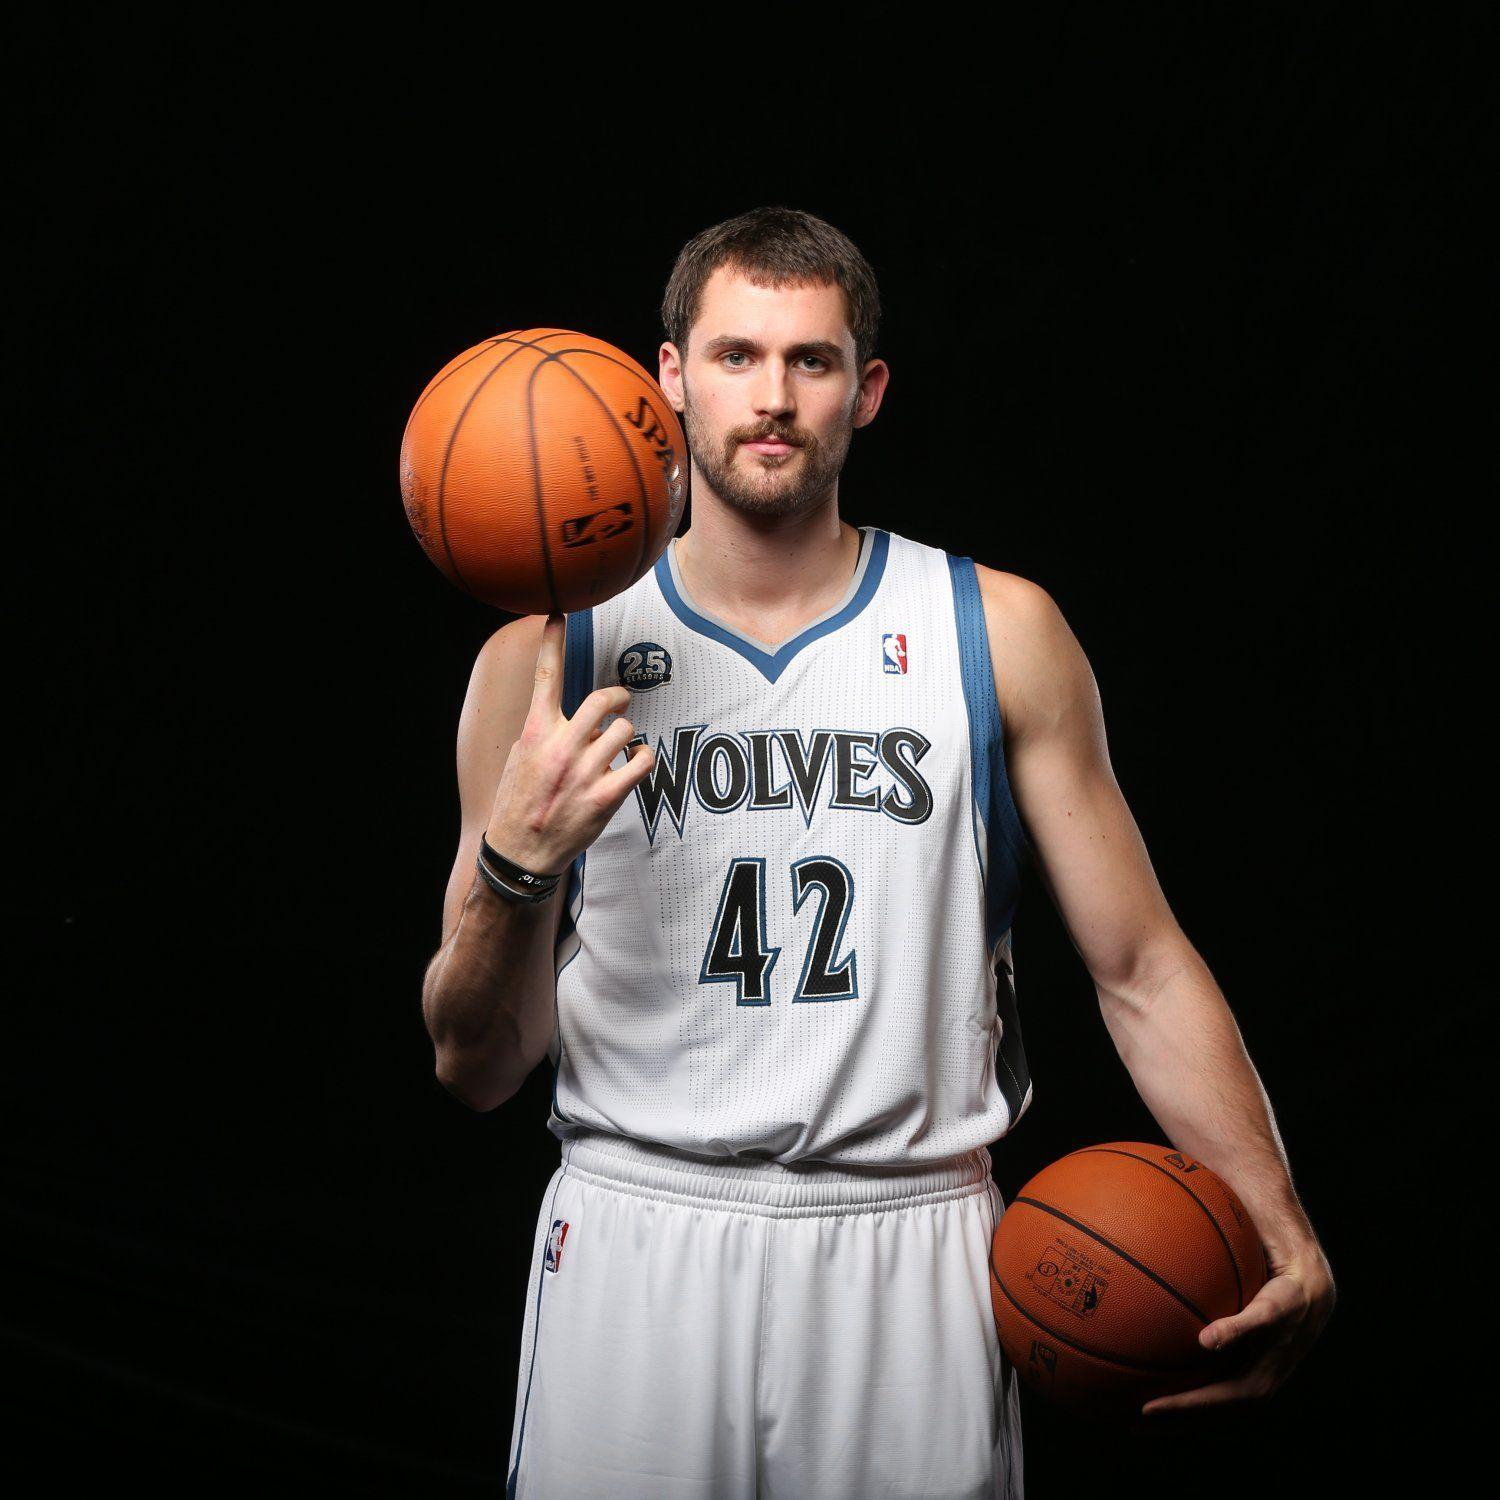 Knight Basketball Player Wallpaper: Kevin Love 2015 Wallpapers